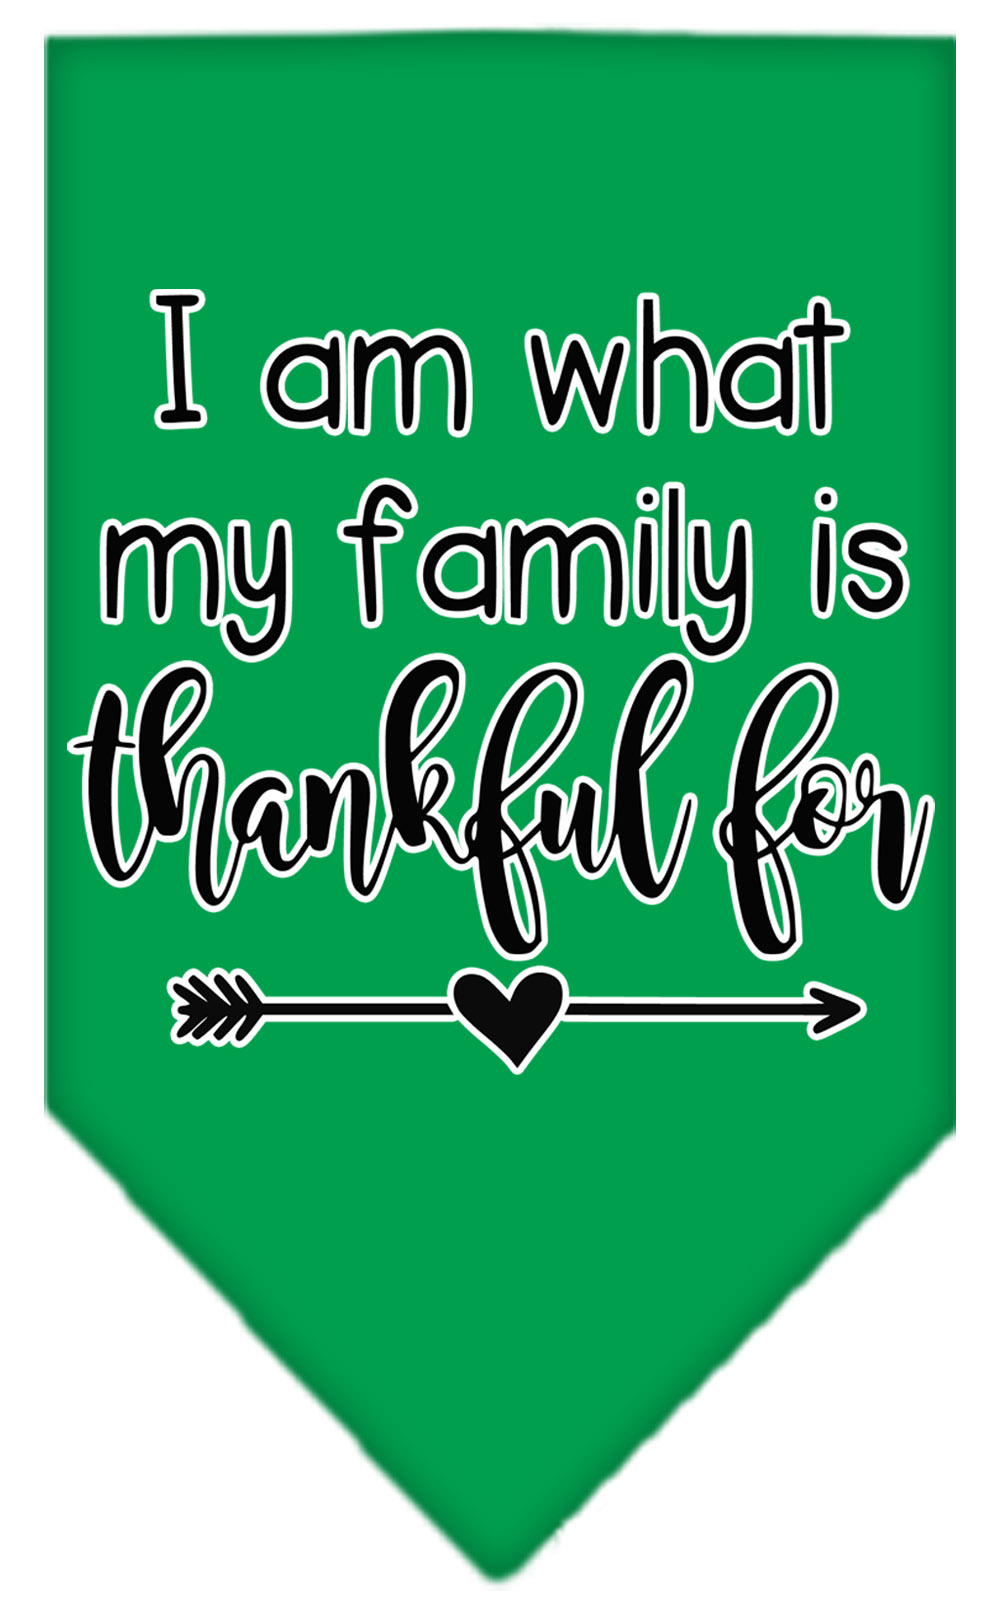 I Am What My Family is Thankful For Screen Print Bandana Emerald Green Small